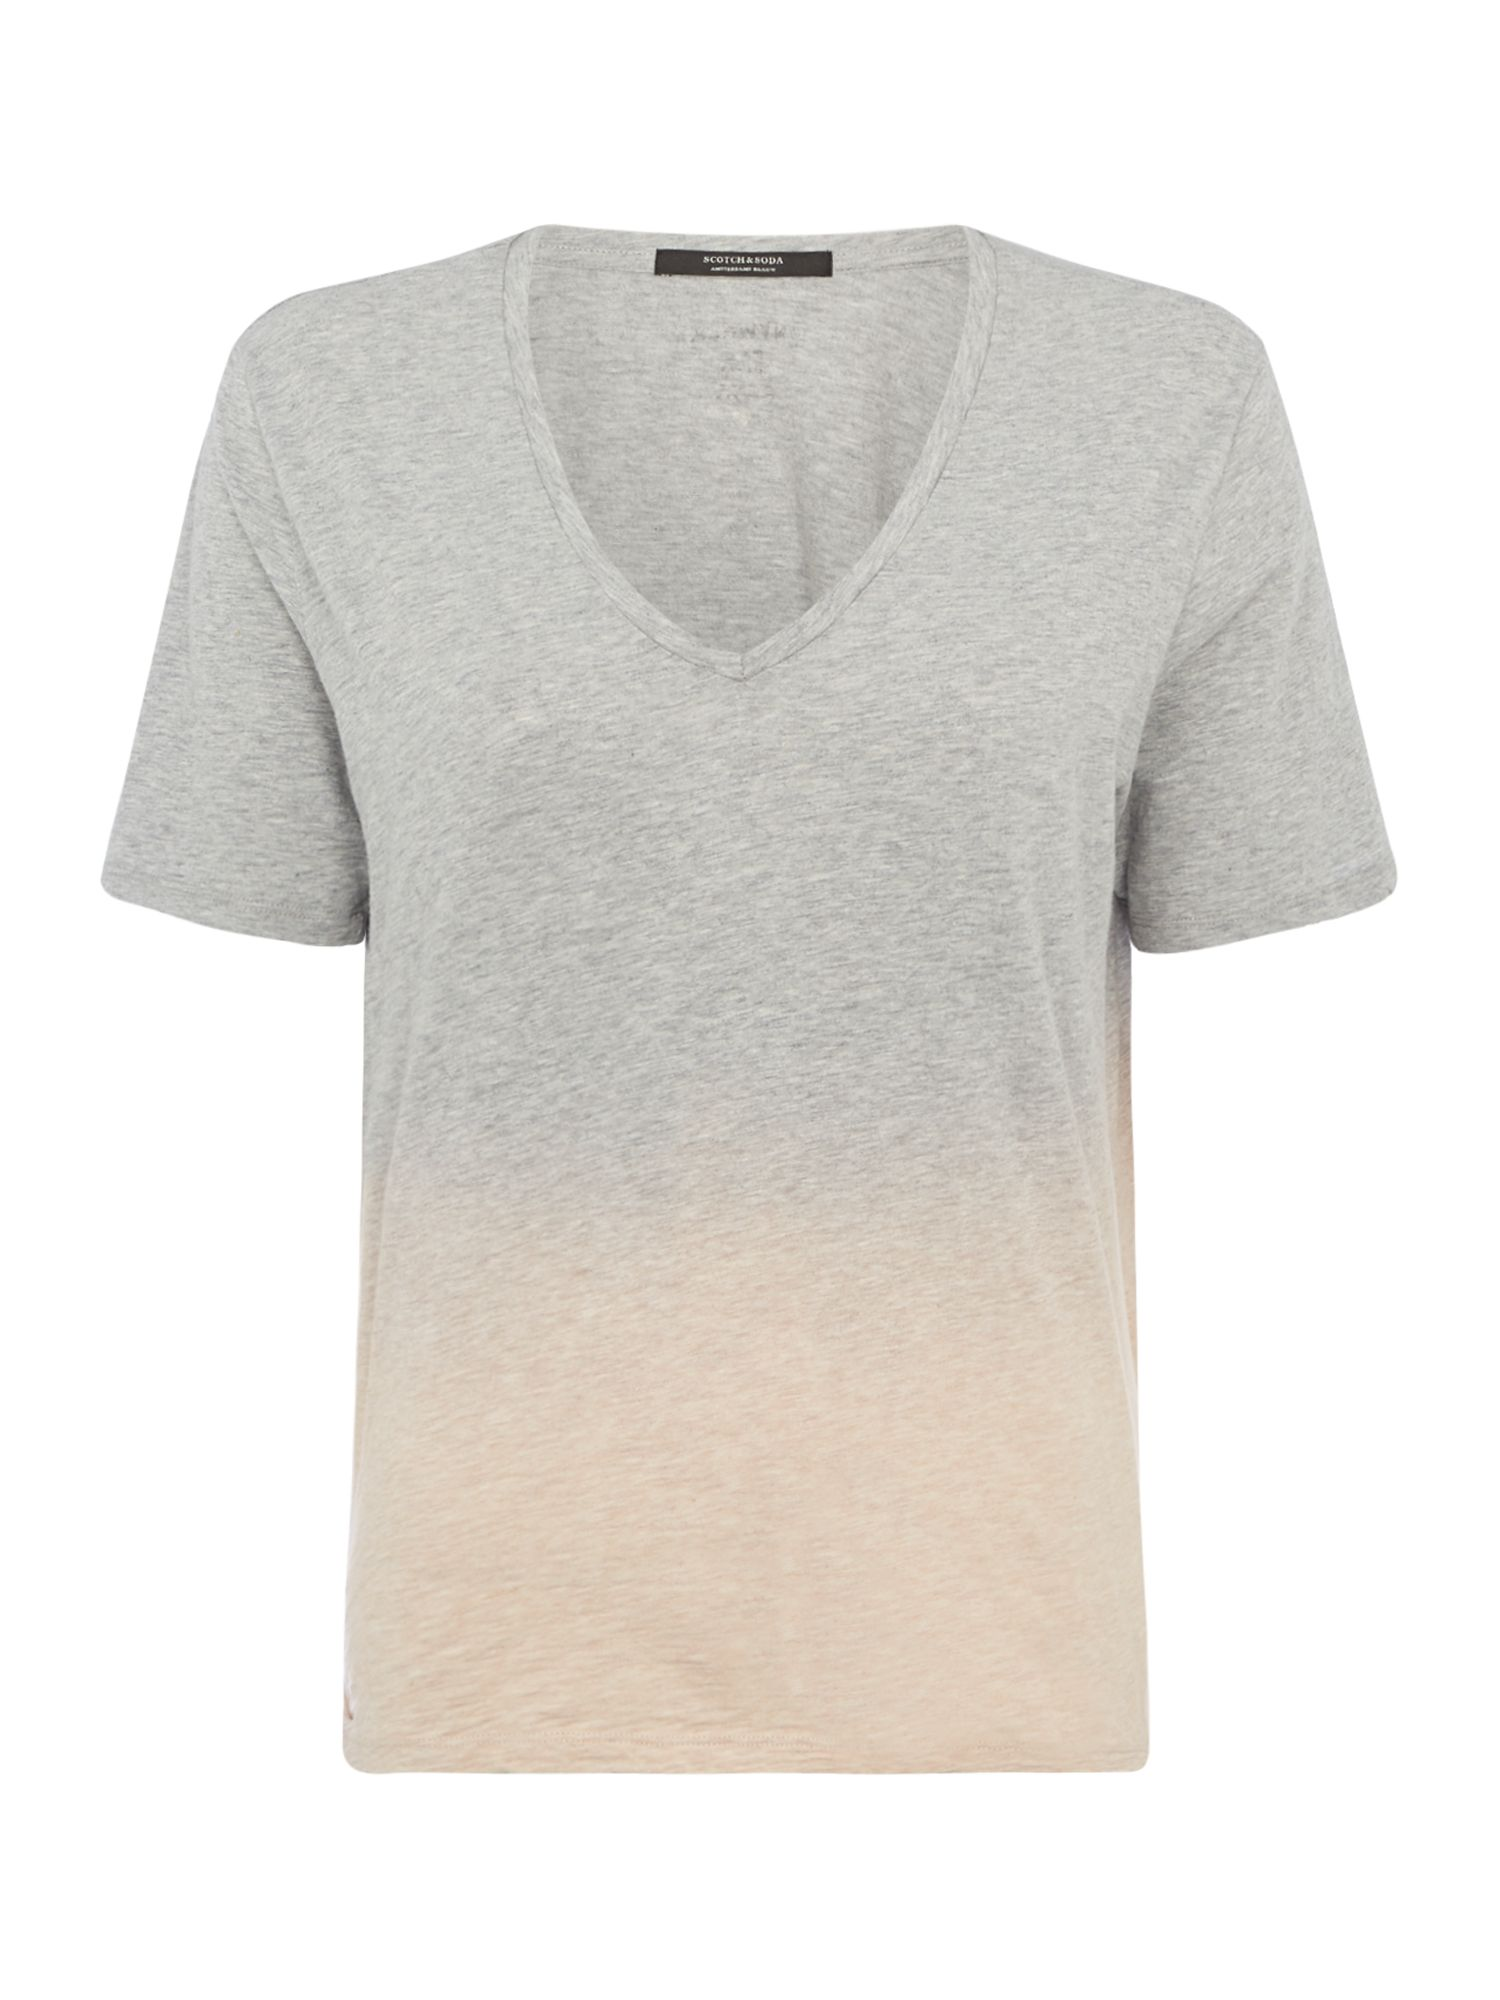 Maison Scotch Dip Dye V neck Tee, Grey